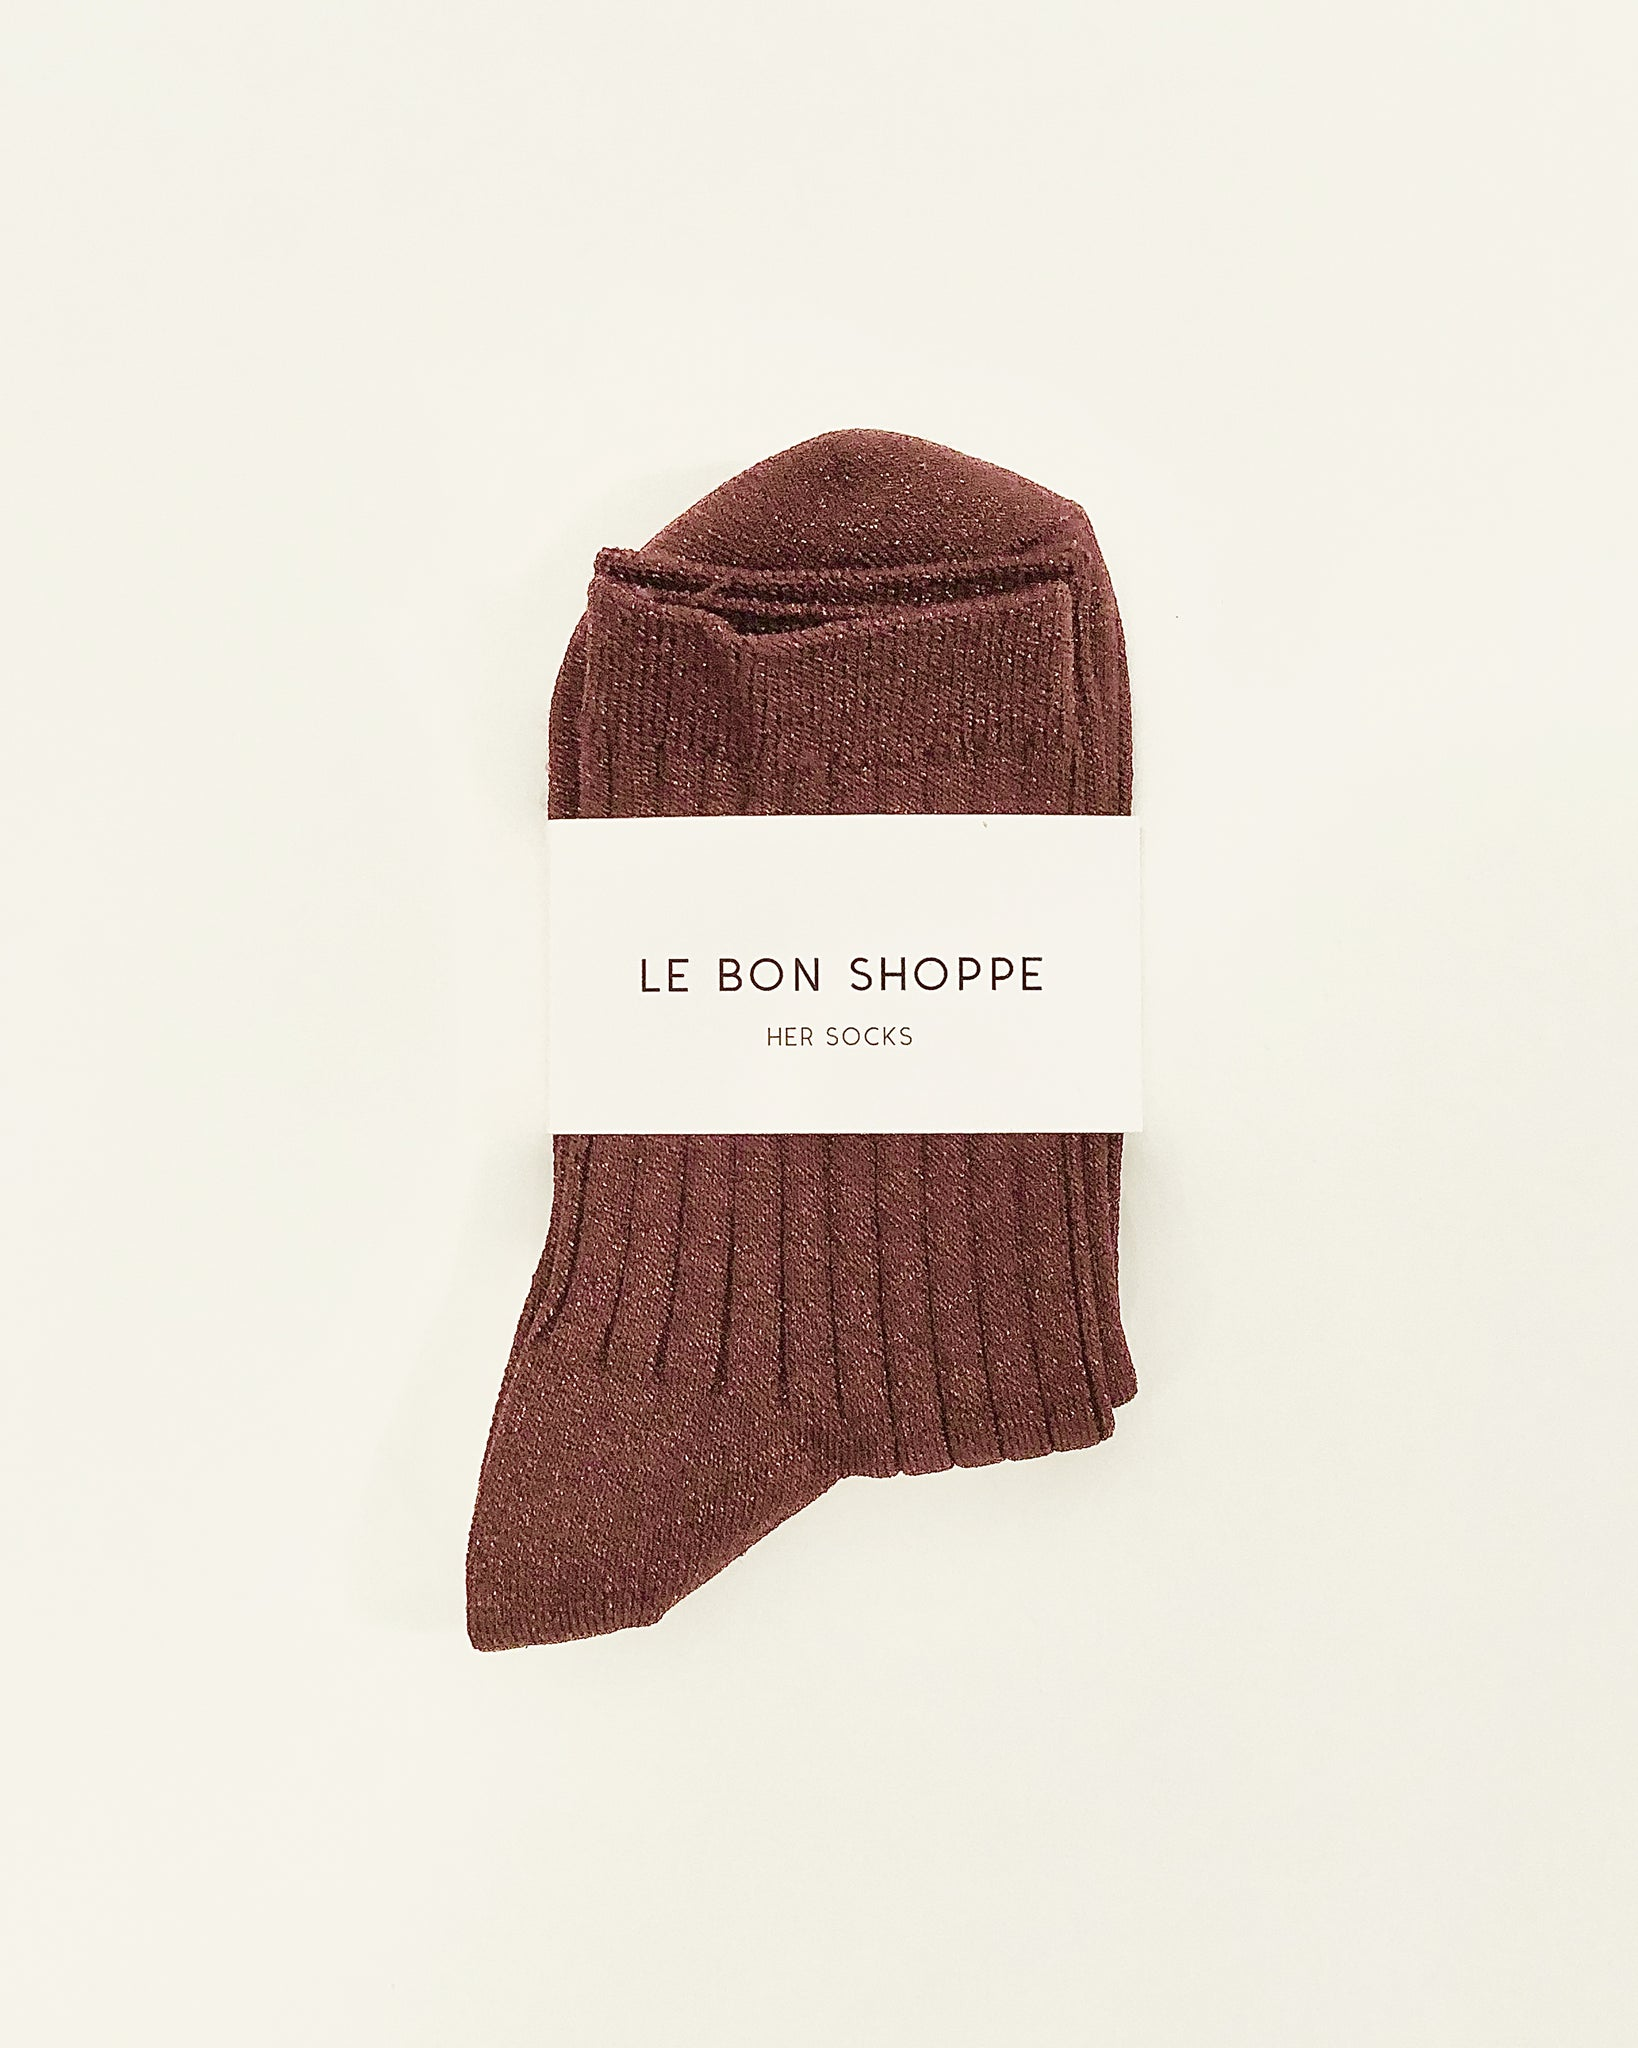 glitter her socks in bronze from le bon shoppe available at lahn